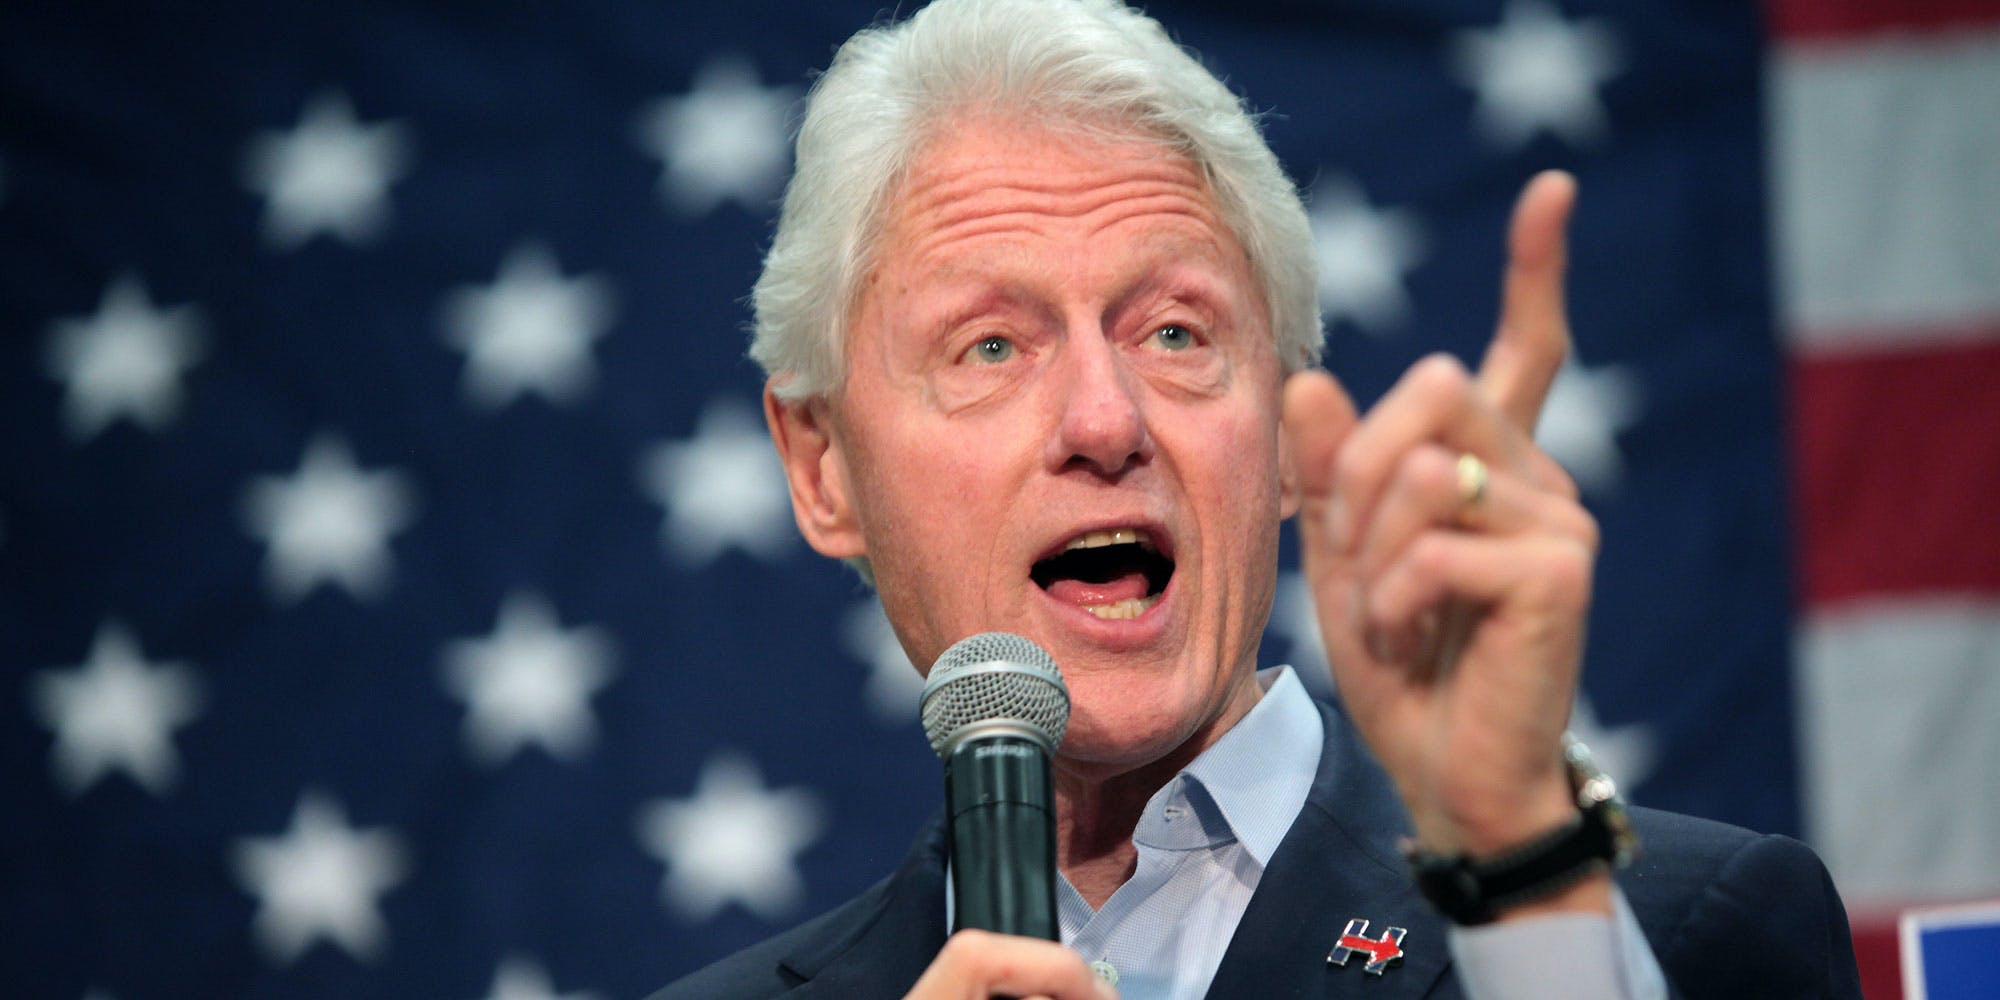 Bill Clinton pointing his finger in front of the American flag